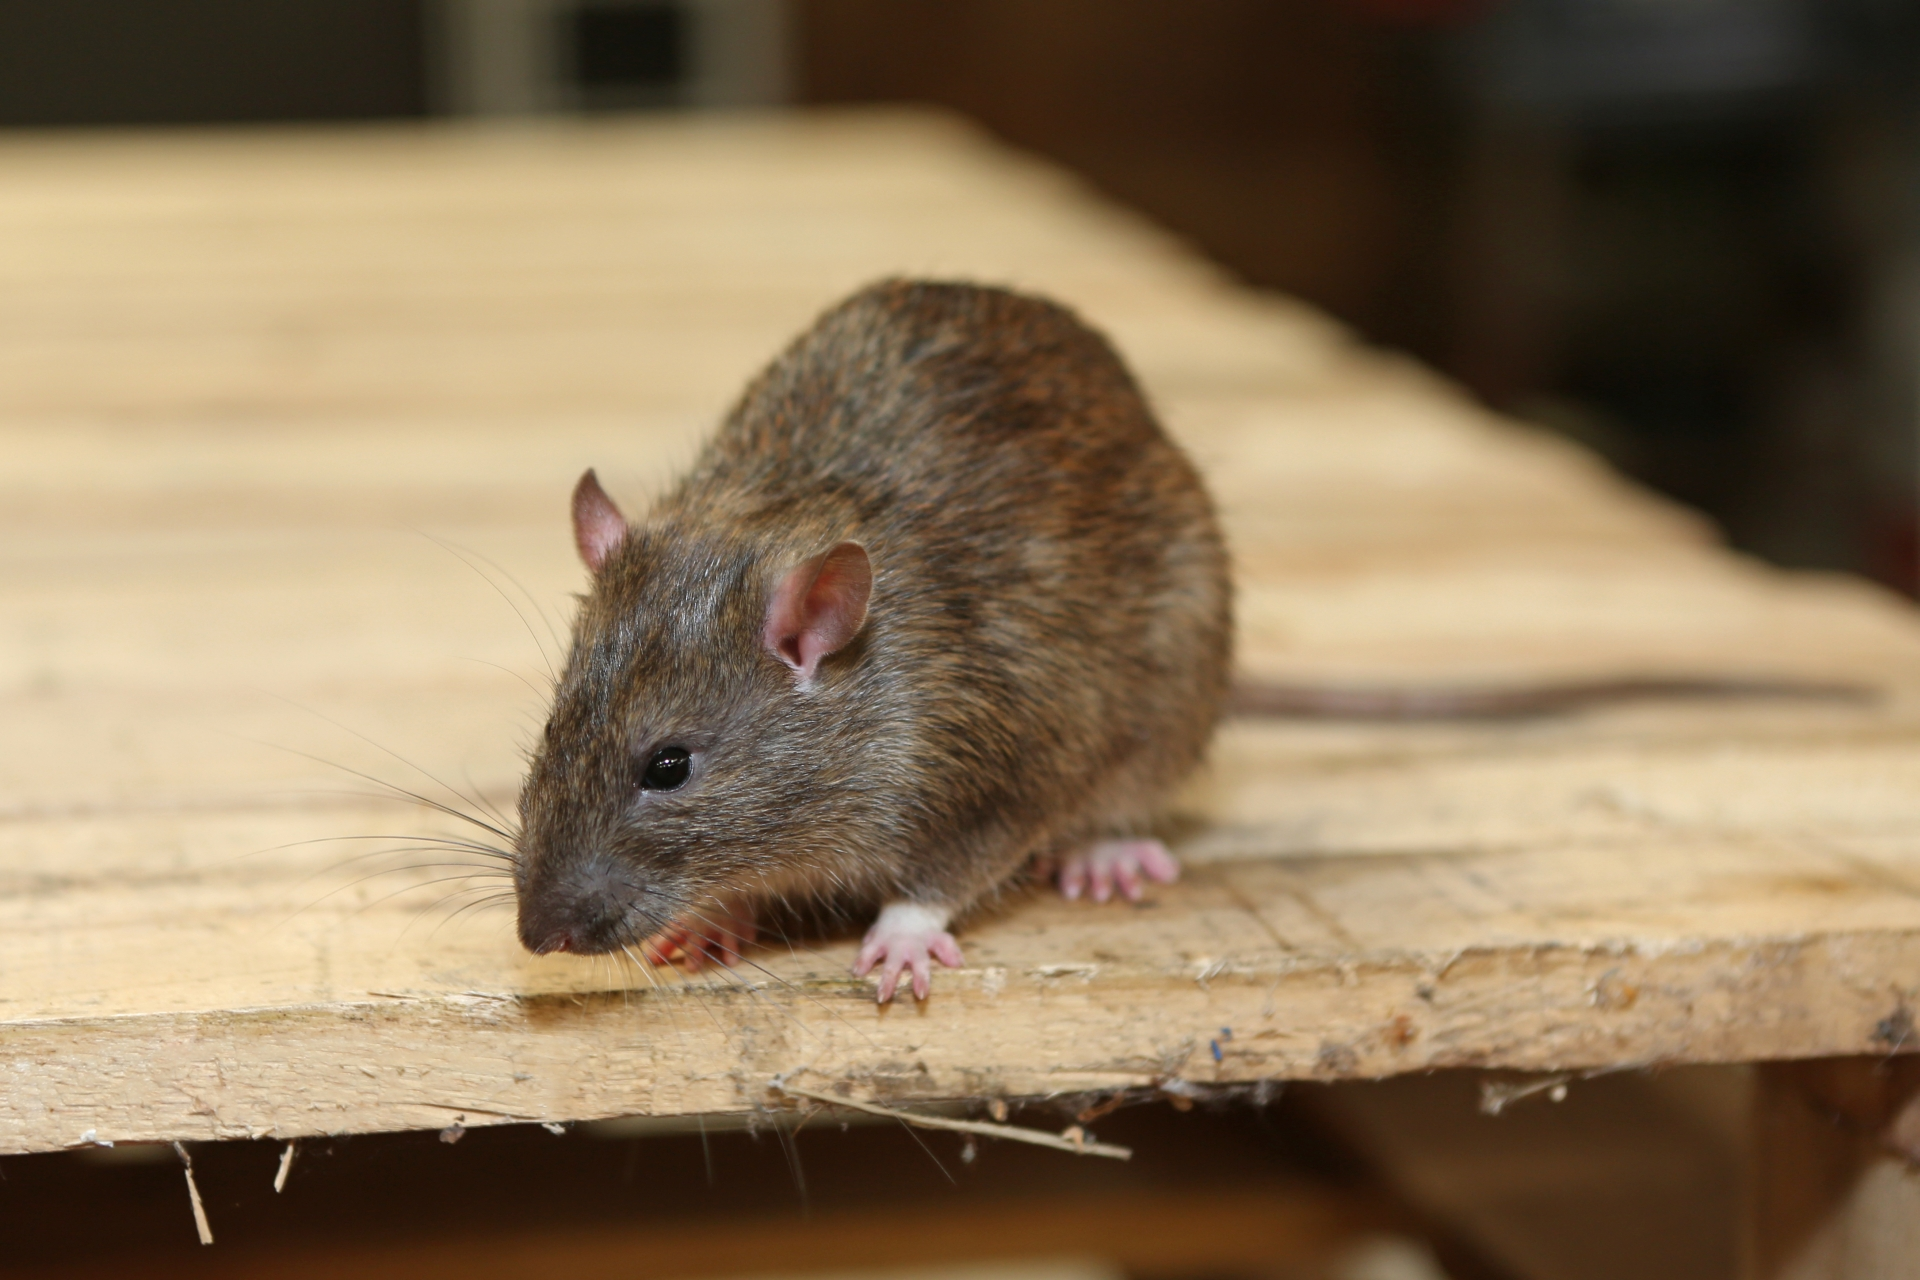 Rat Infestation, Pest Control in North Cheam, Stonecot Hill, SM3. Call Now 020 8166 9746